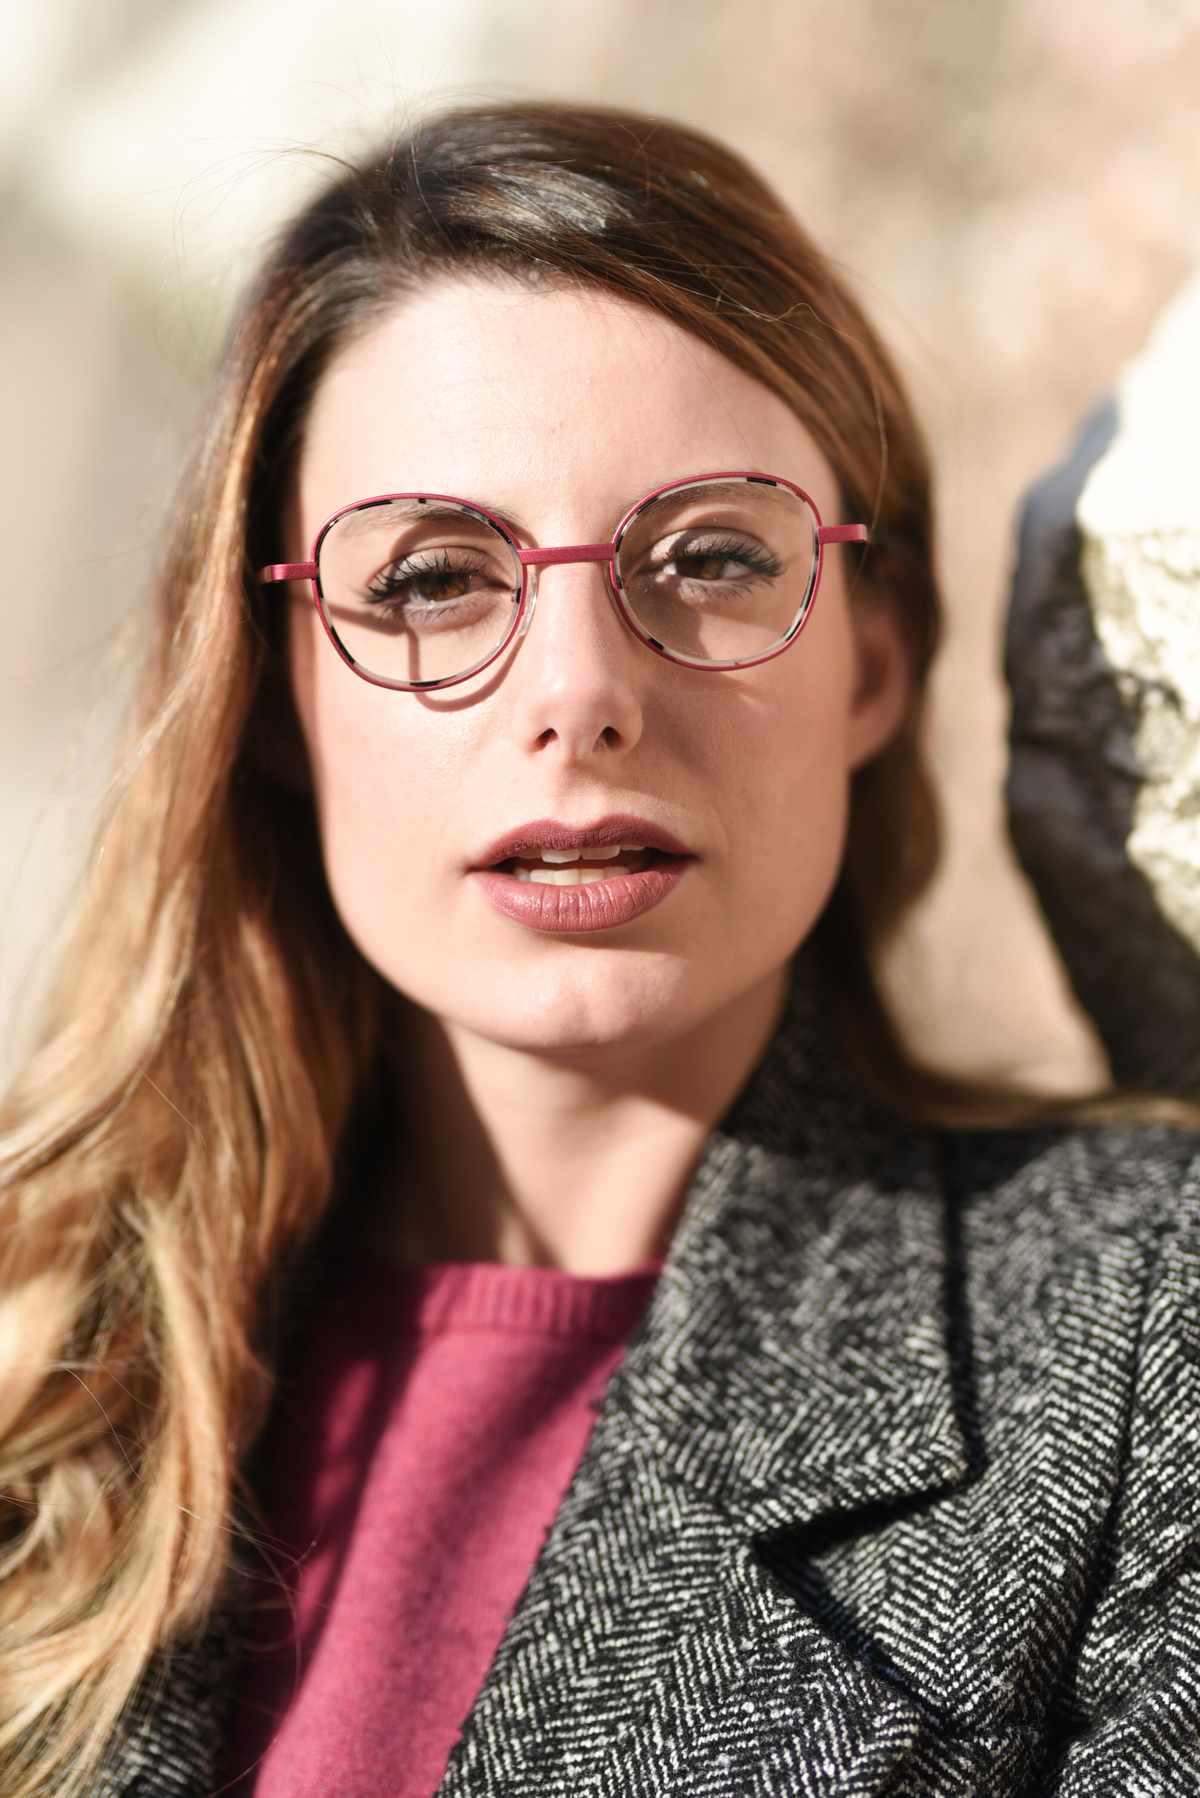 giulia de martin naoned eyeglasses pink 2019 2020 behind my glasses eyewear blogger influencer-9